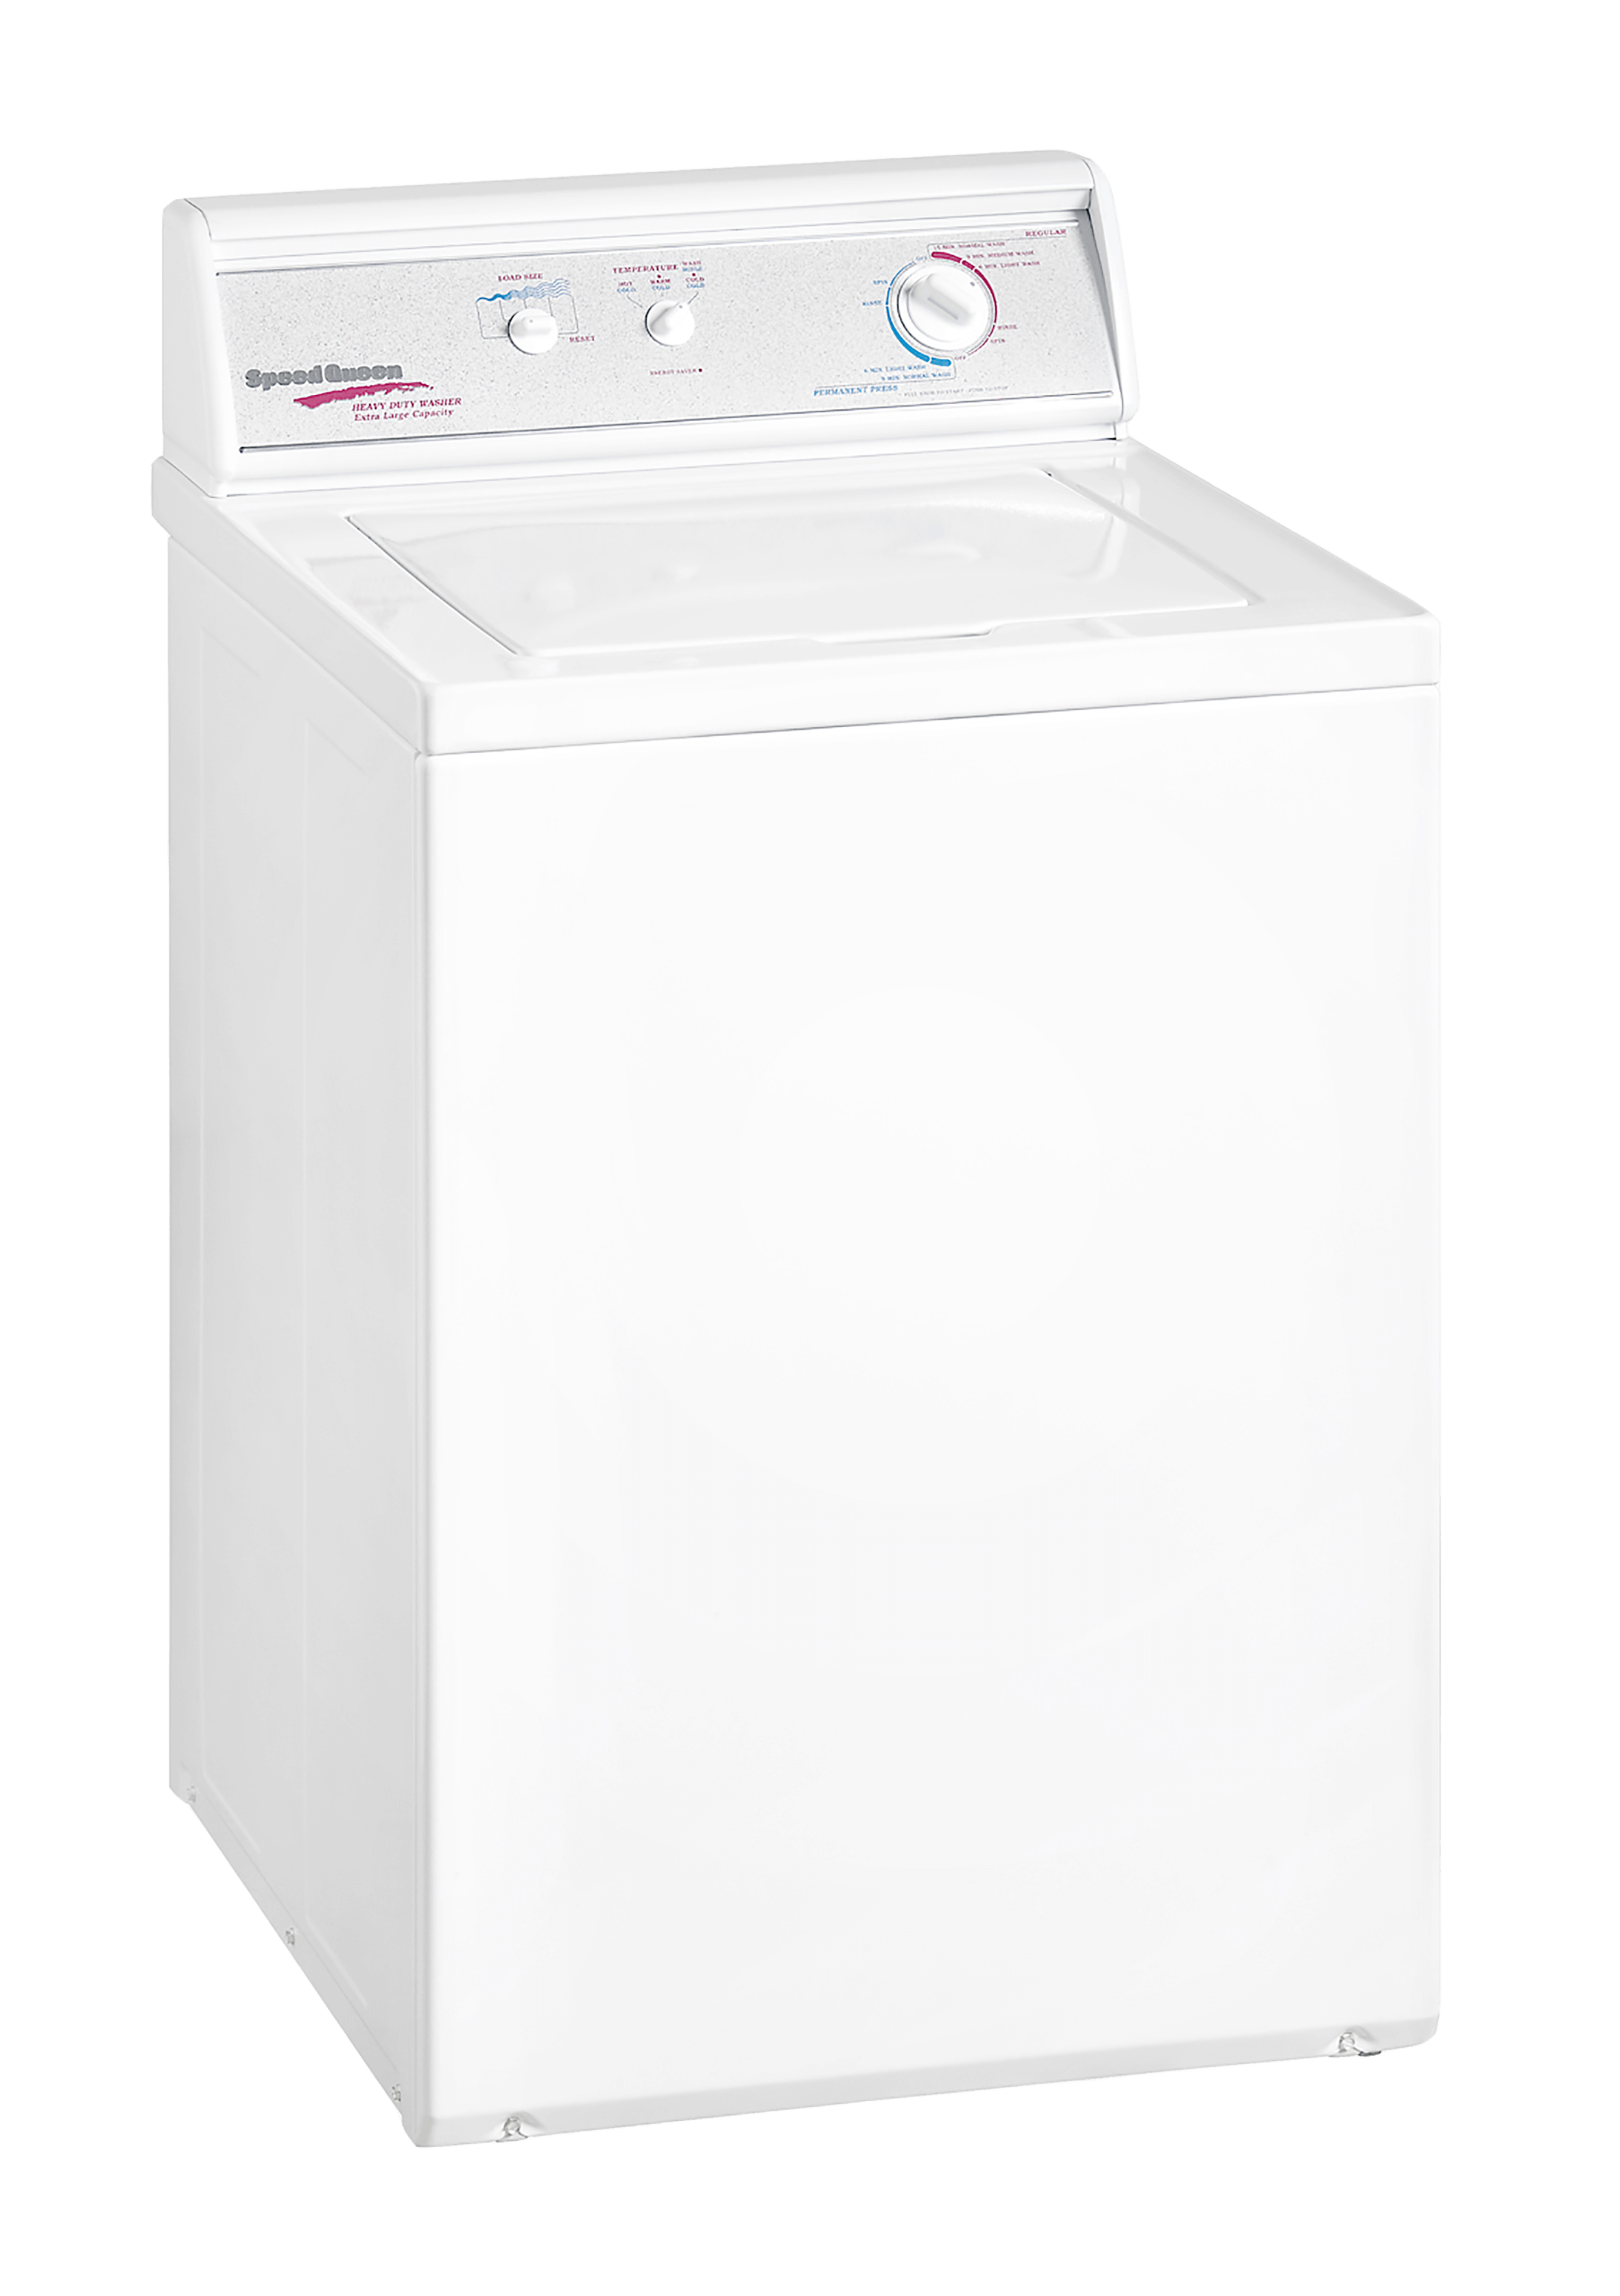 Speed Queen Top Loader Washing Machine White Model